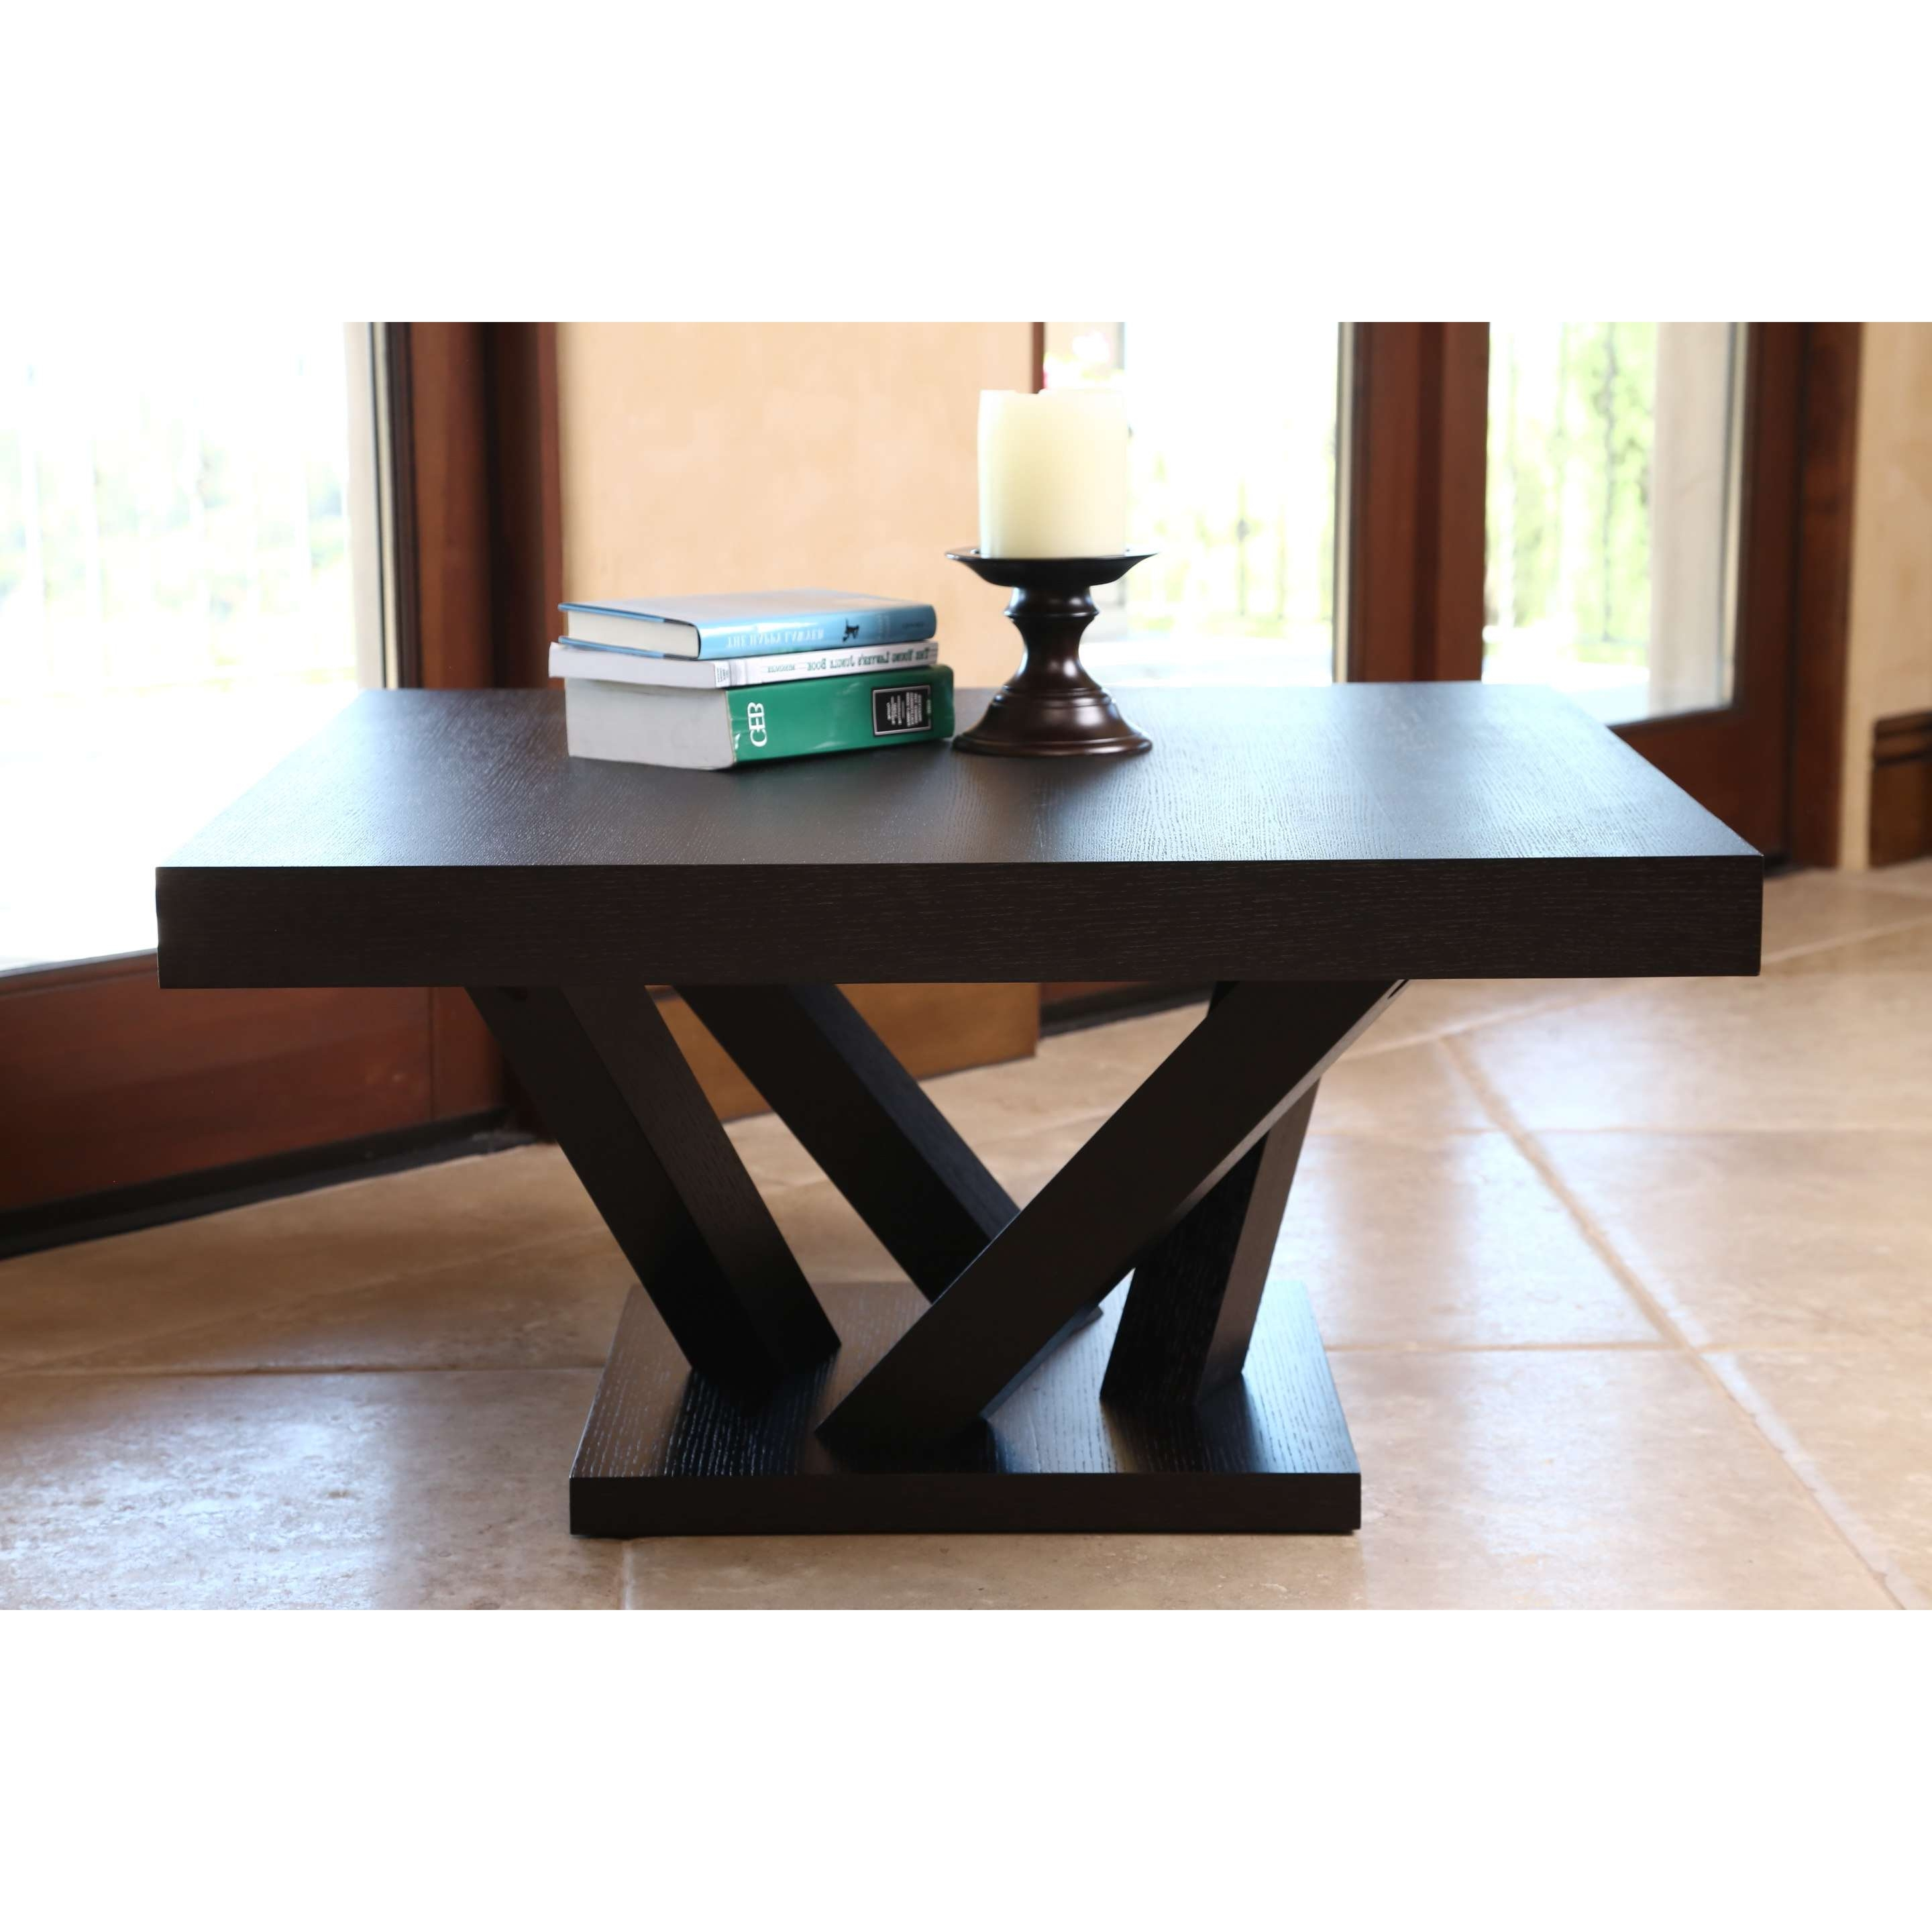 Abbyson Cosmo Espresso Wood Square Coffee Table – Free Shipping Within Fashionable Cosmo Coffee Tables (View 20 of 20)